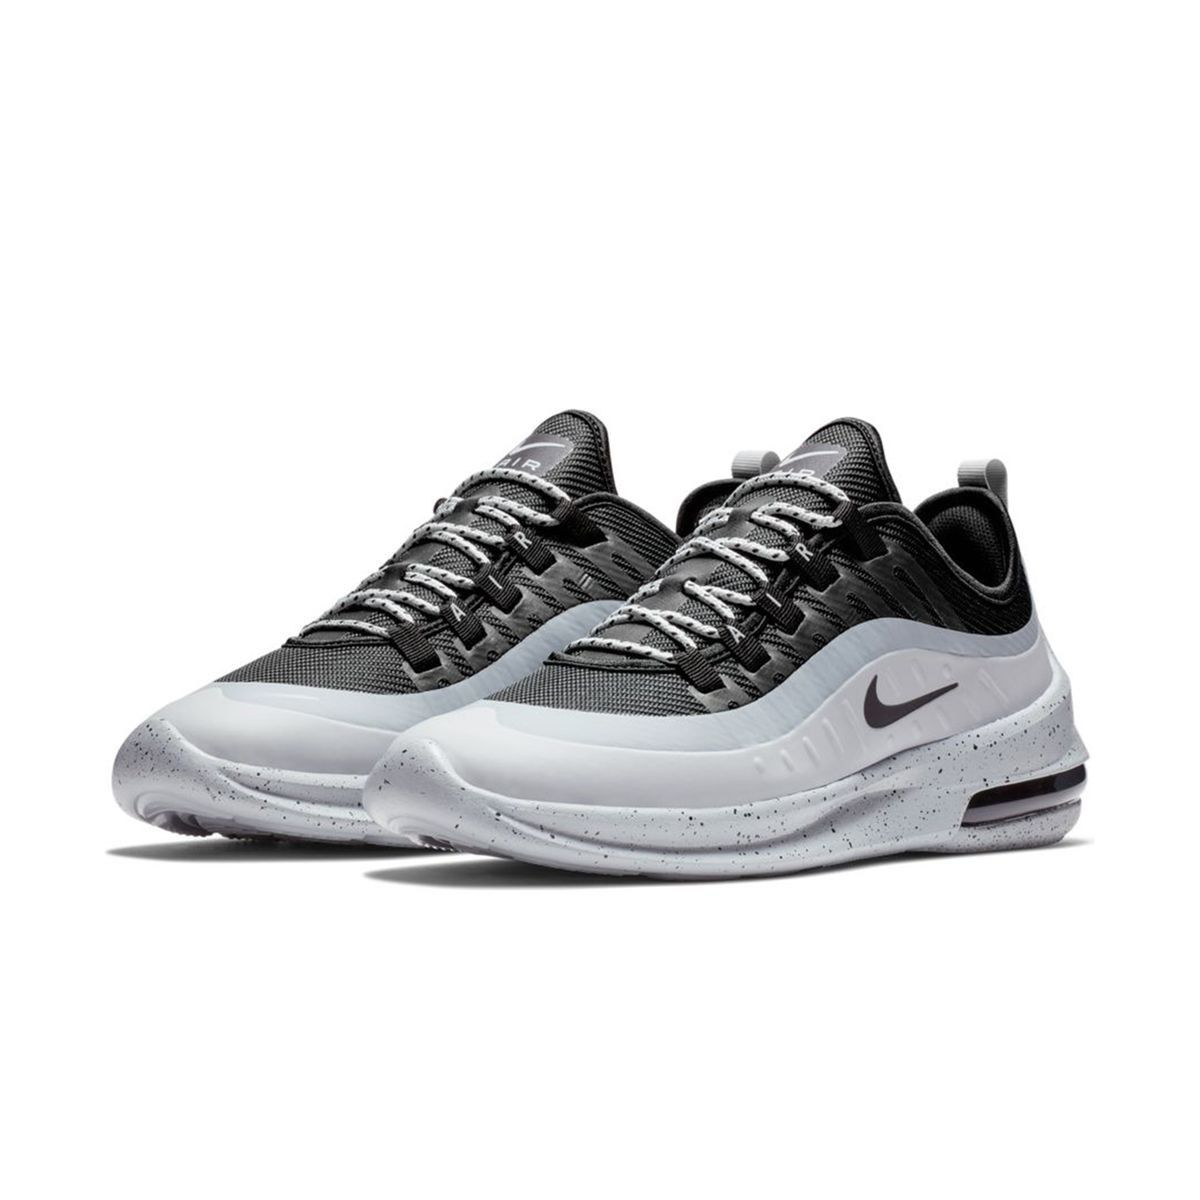 9b10ba226b73 Baskets Nike Air Max Axis Premium - Taille : 43 | Zastro's Kicks ...